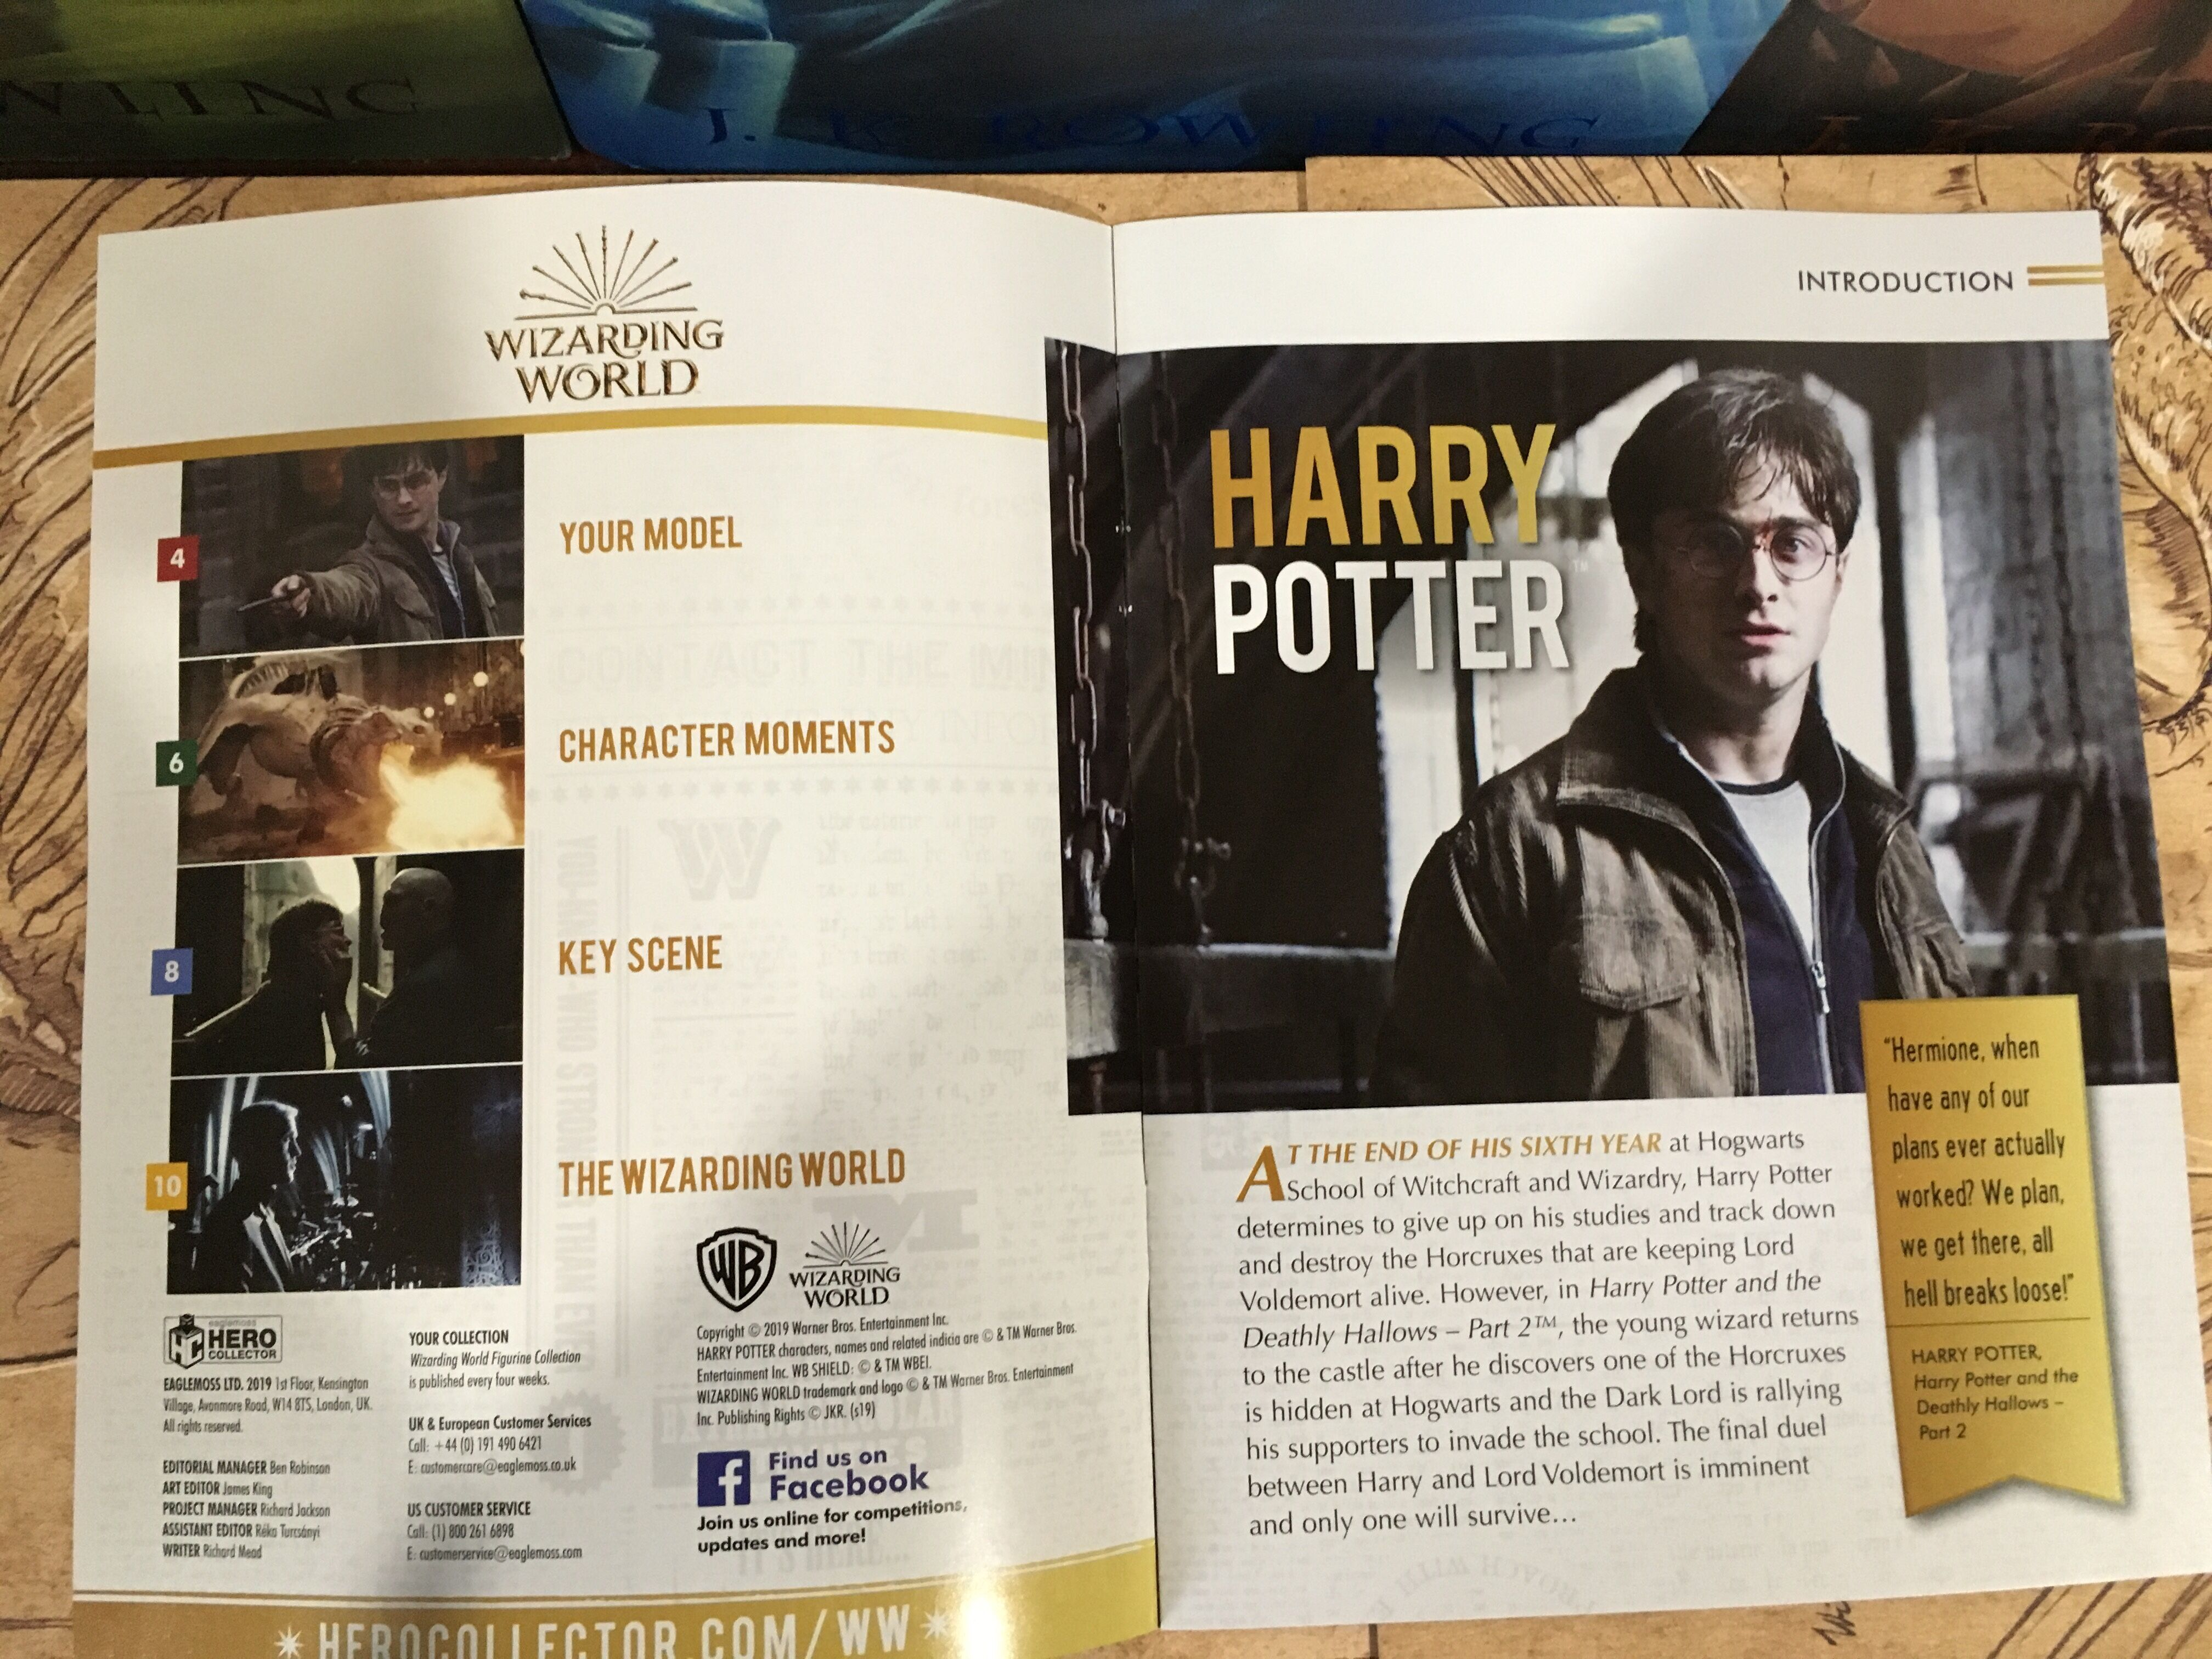 Page two of the magazine gives an index of the content included, as well as a brief character introduction.